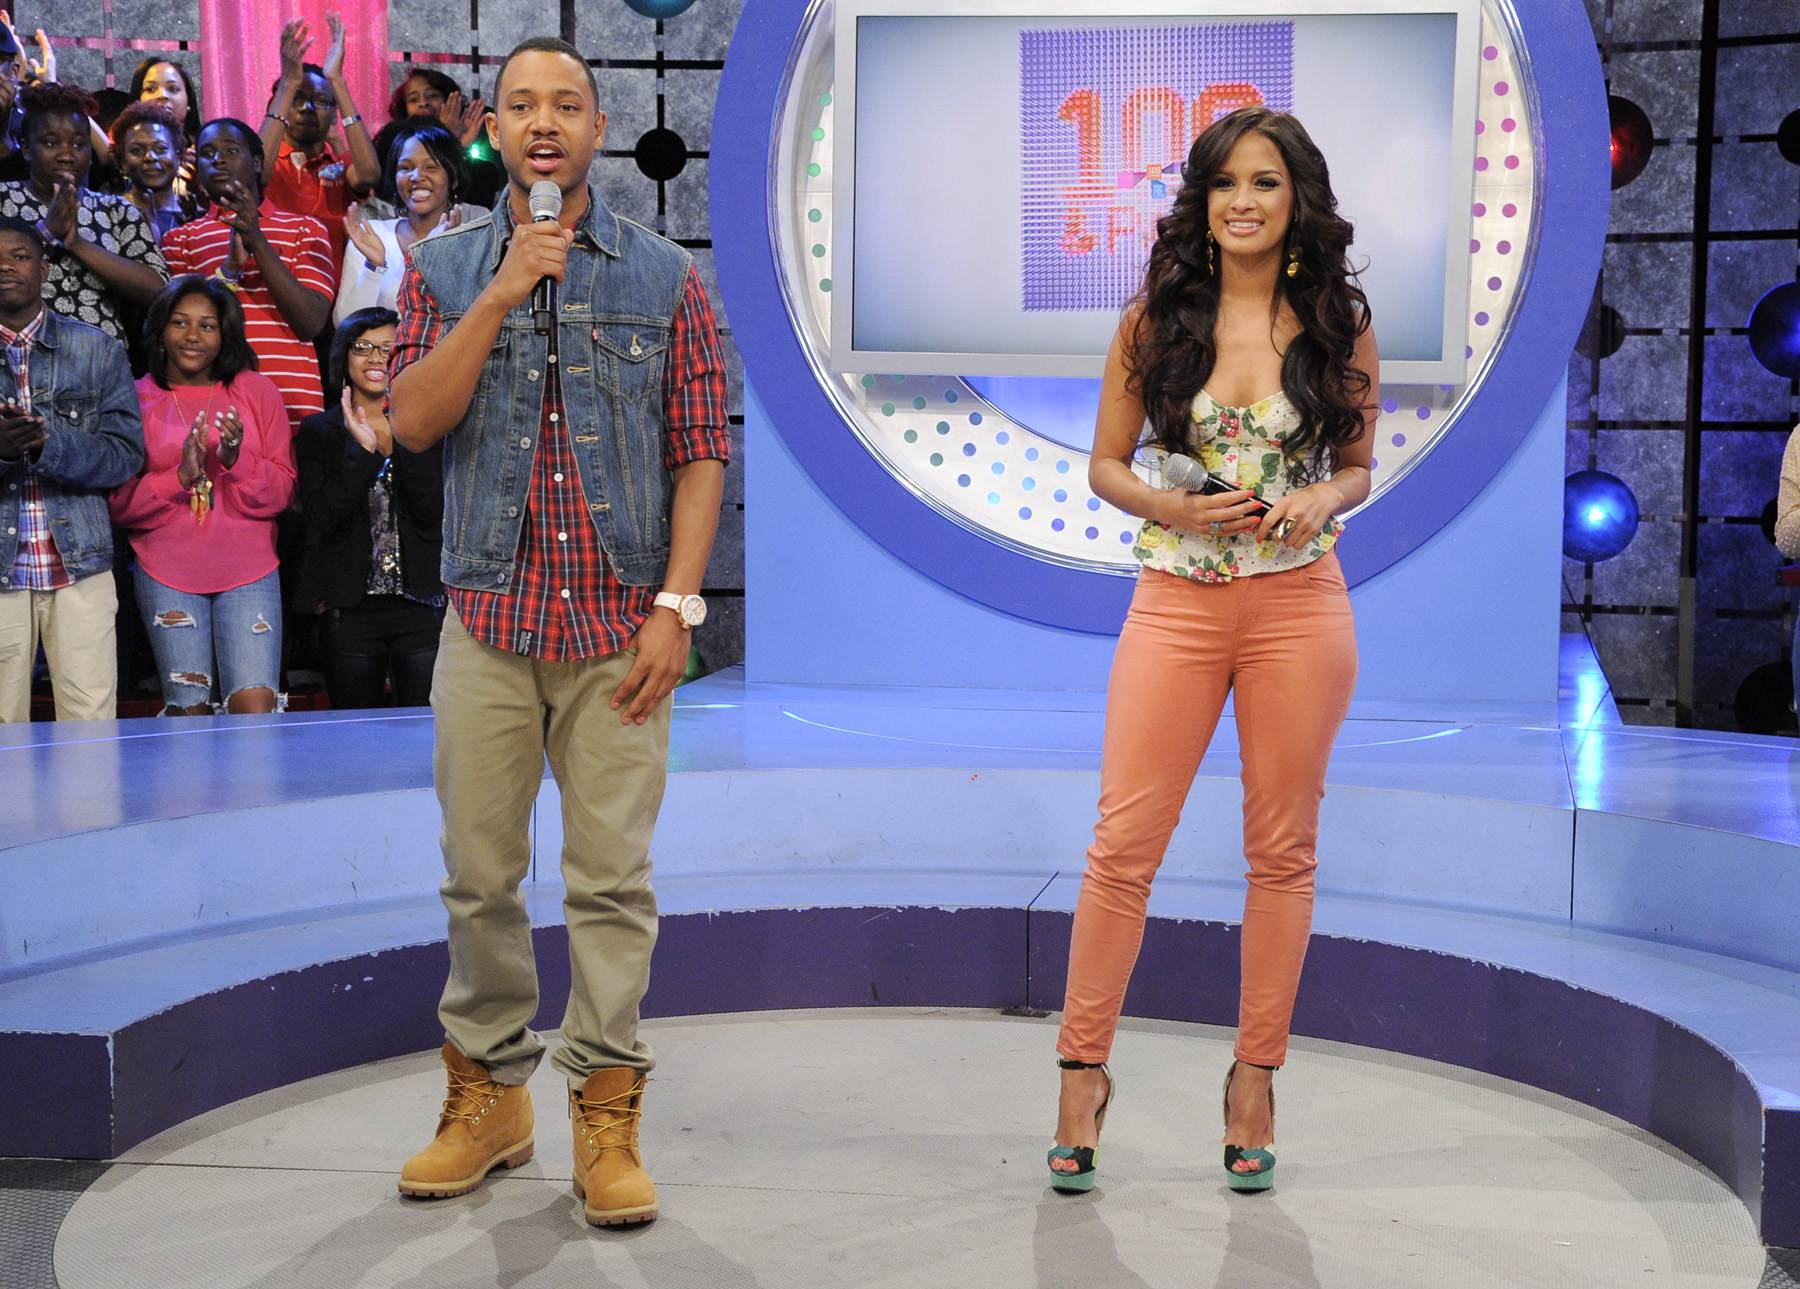 Ready To Talk About The Future - Rocsi Diaz and Terrence J at 106 & Park, April 20, 2012. (Photo: John Ricard / BET)